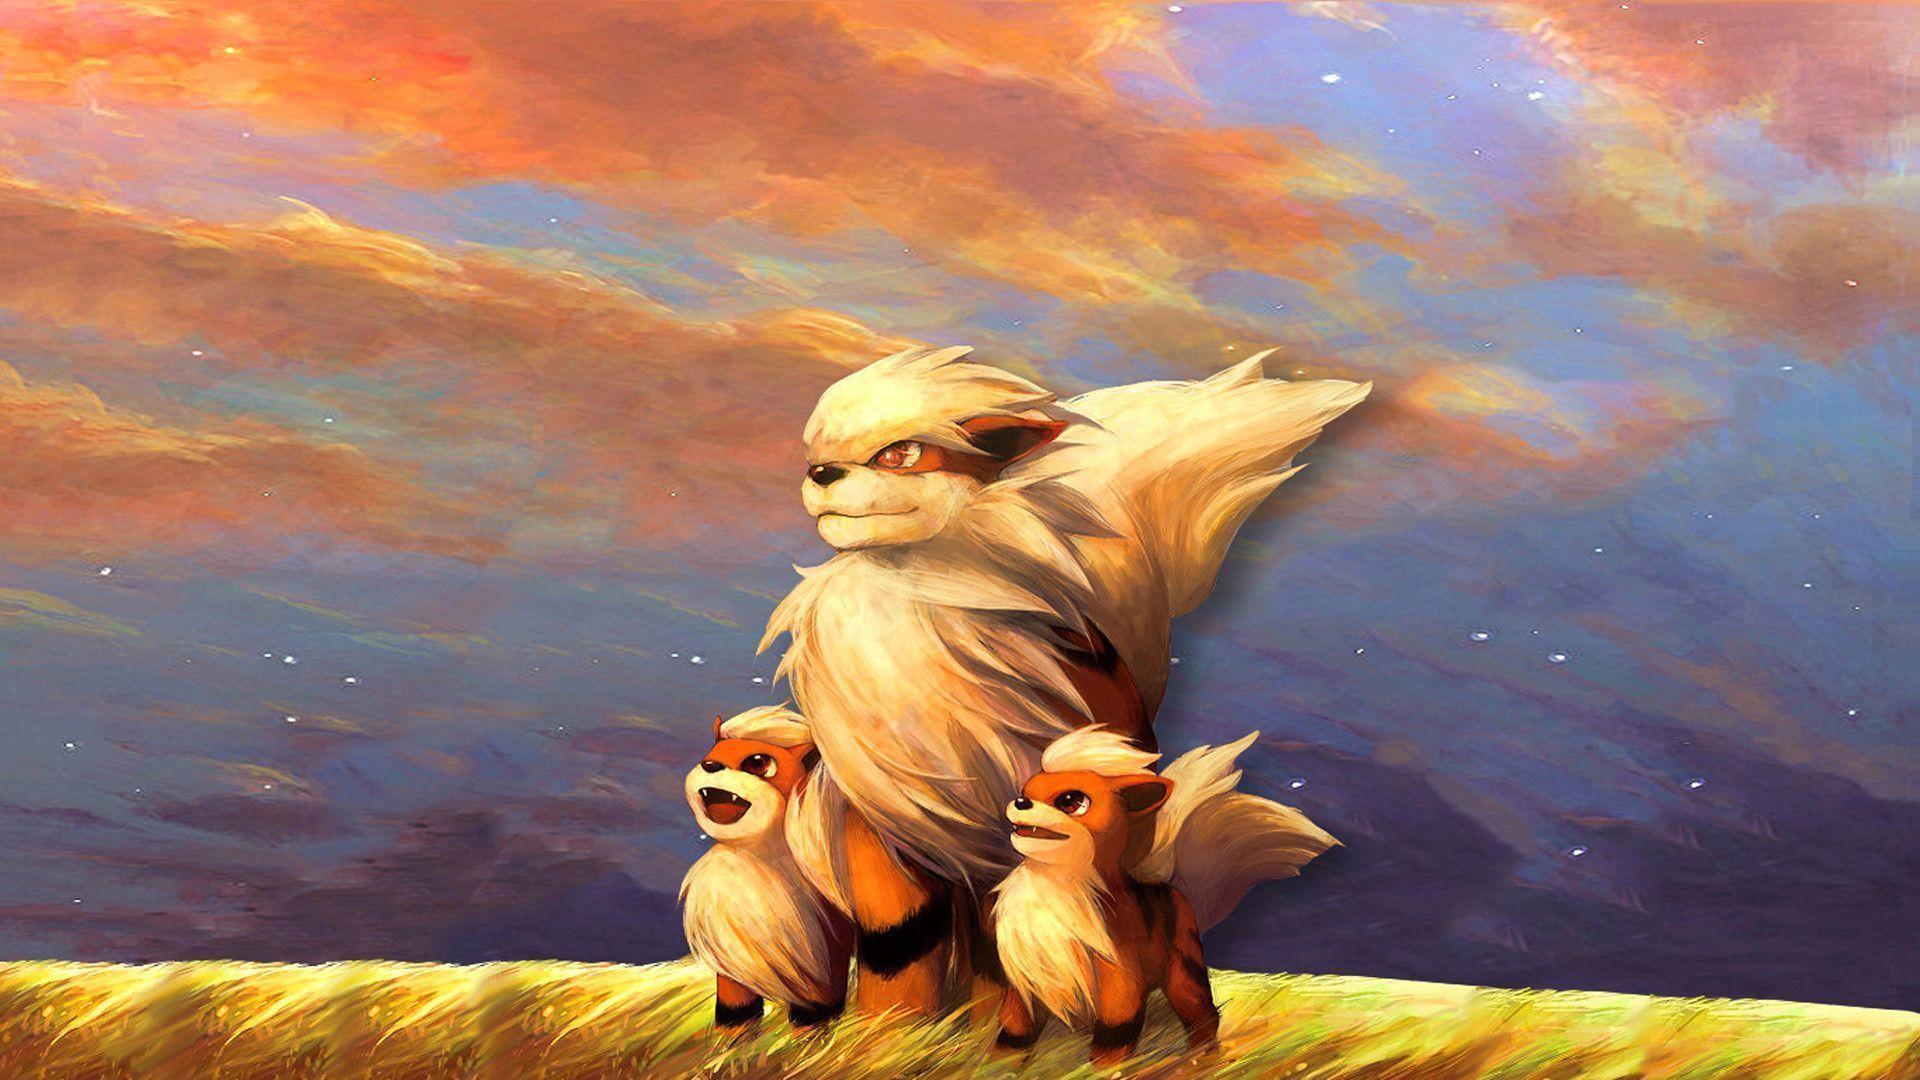 growlithe wallpaper - photo #2